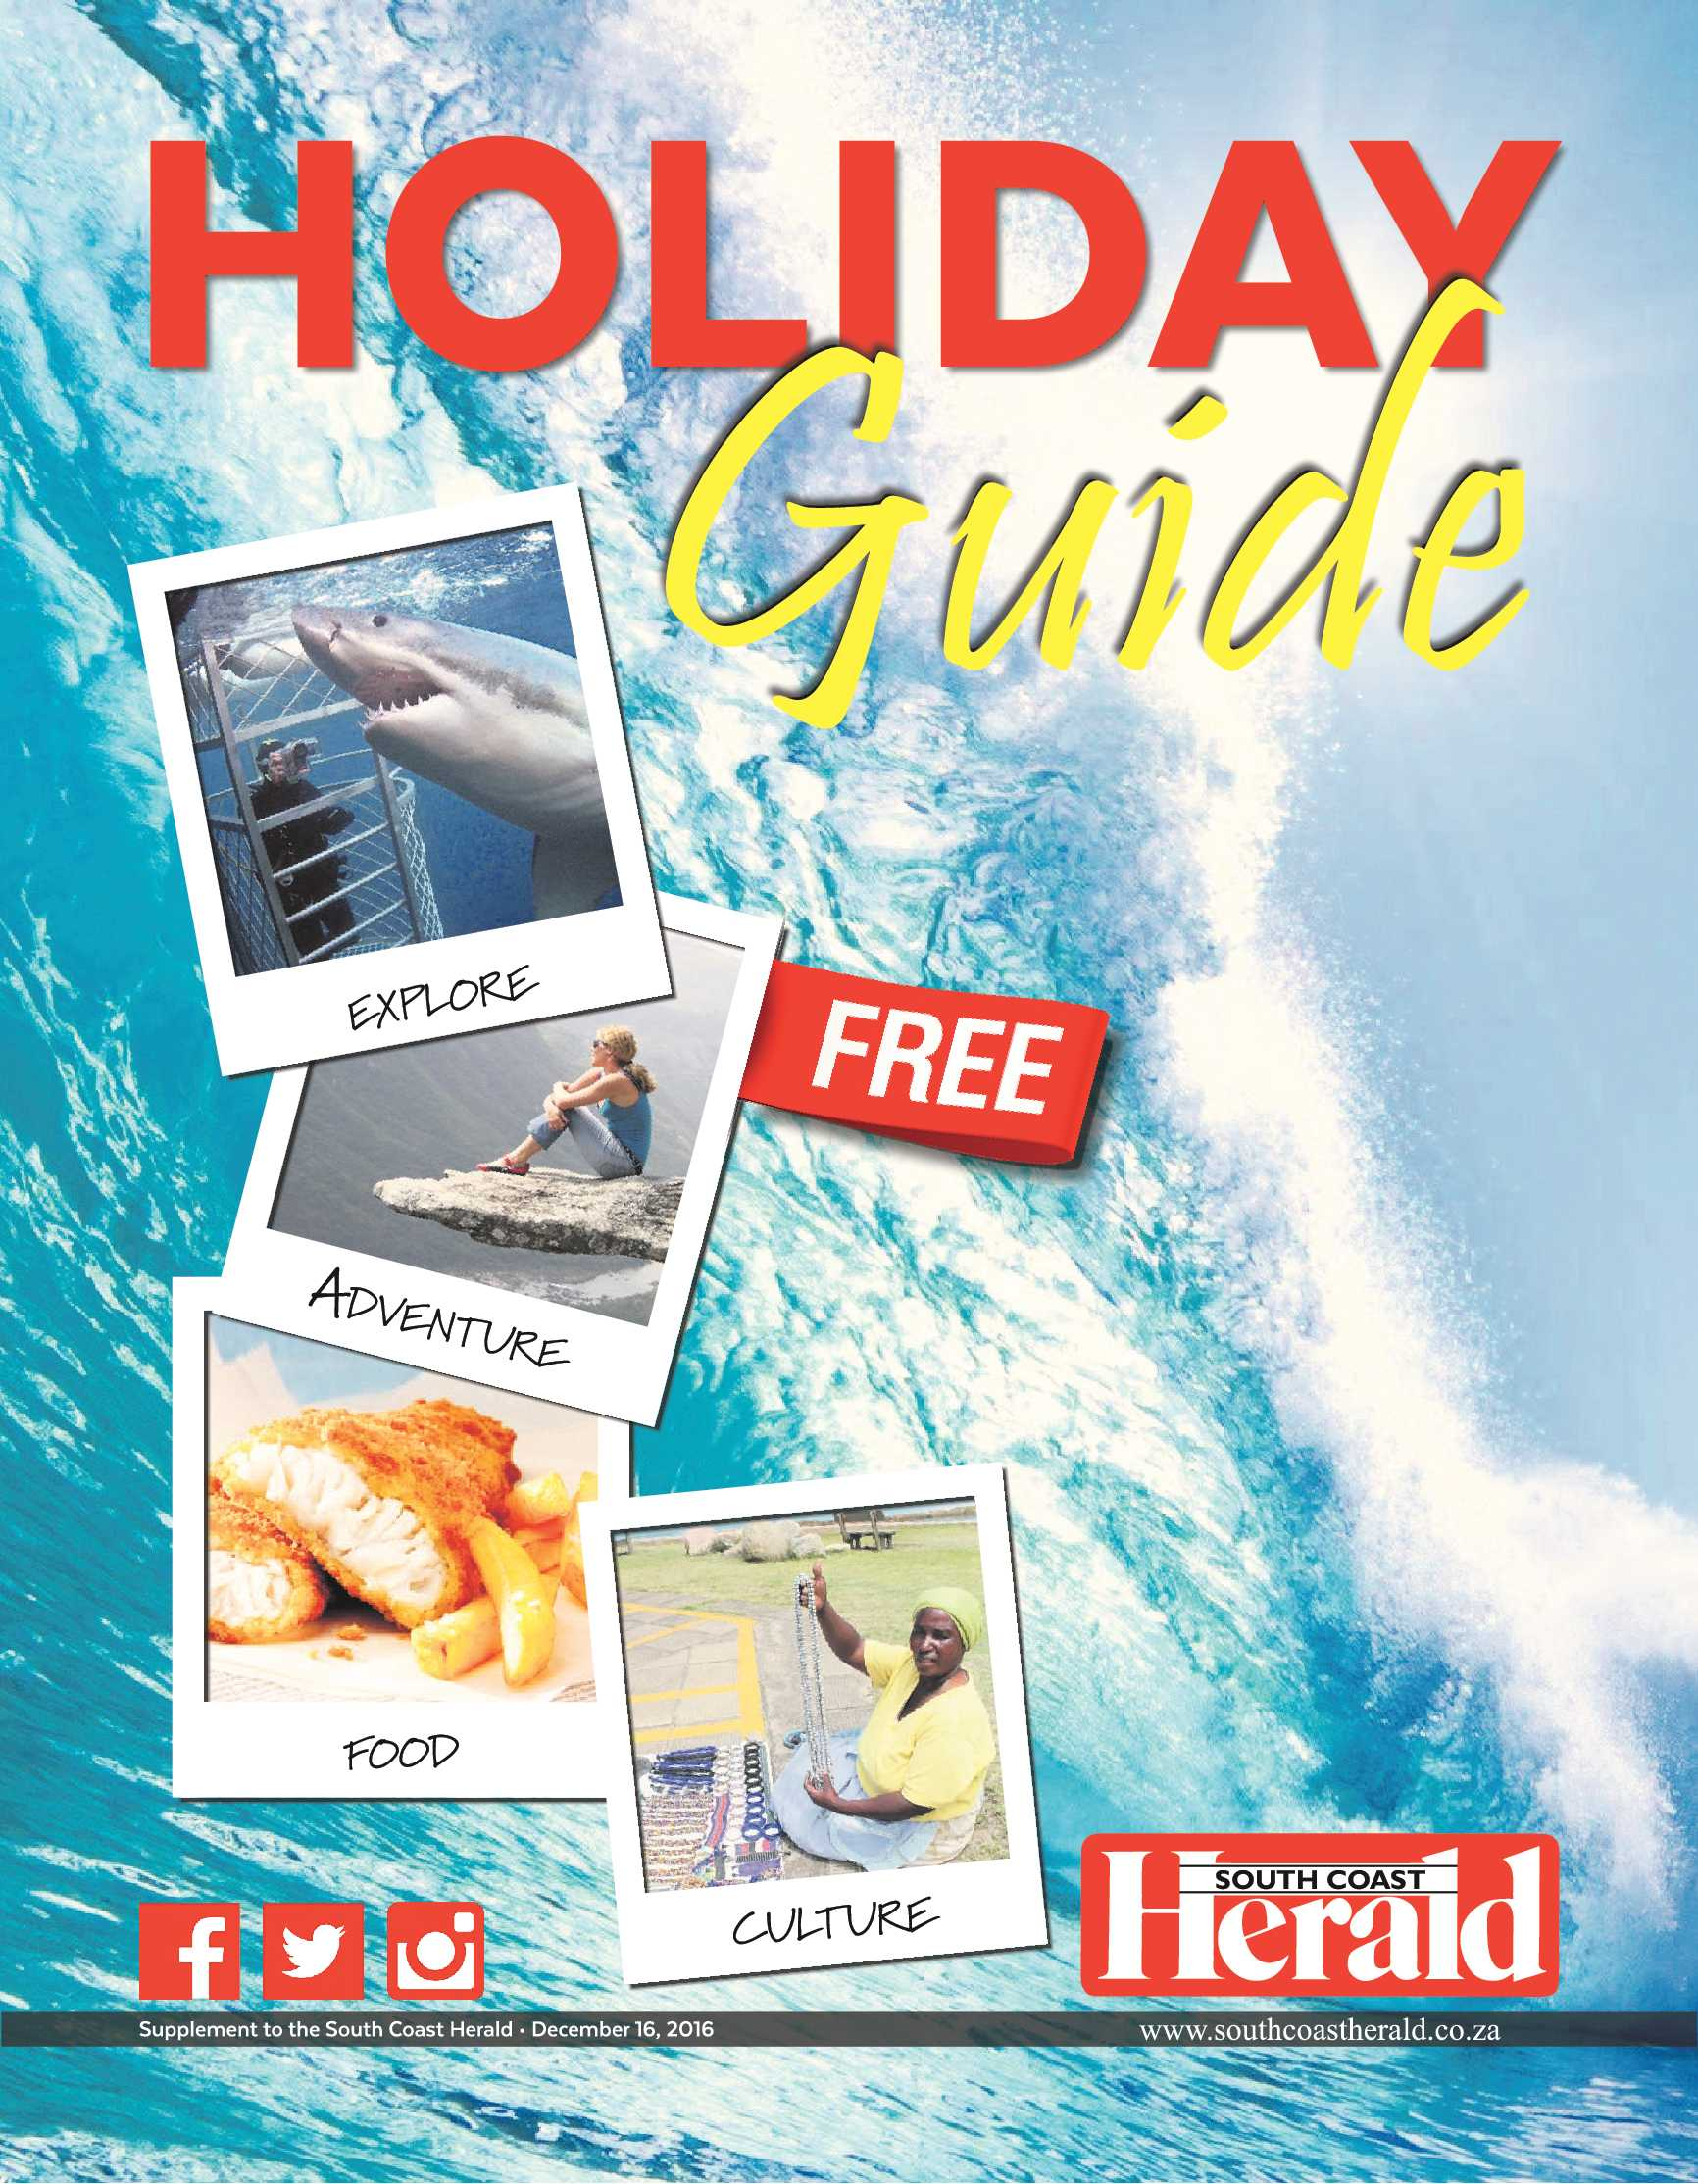 december-holiday-guide-epapers-page-1